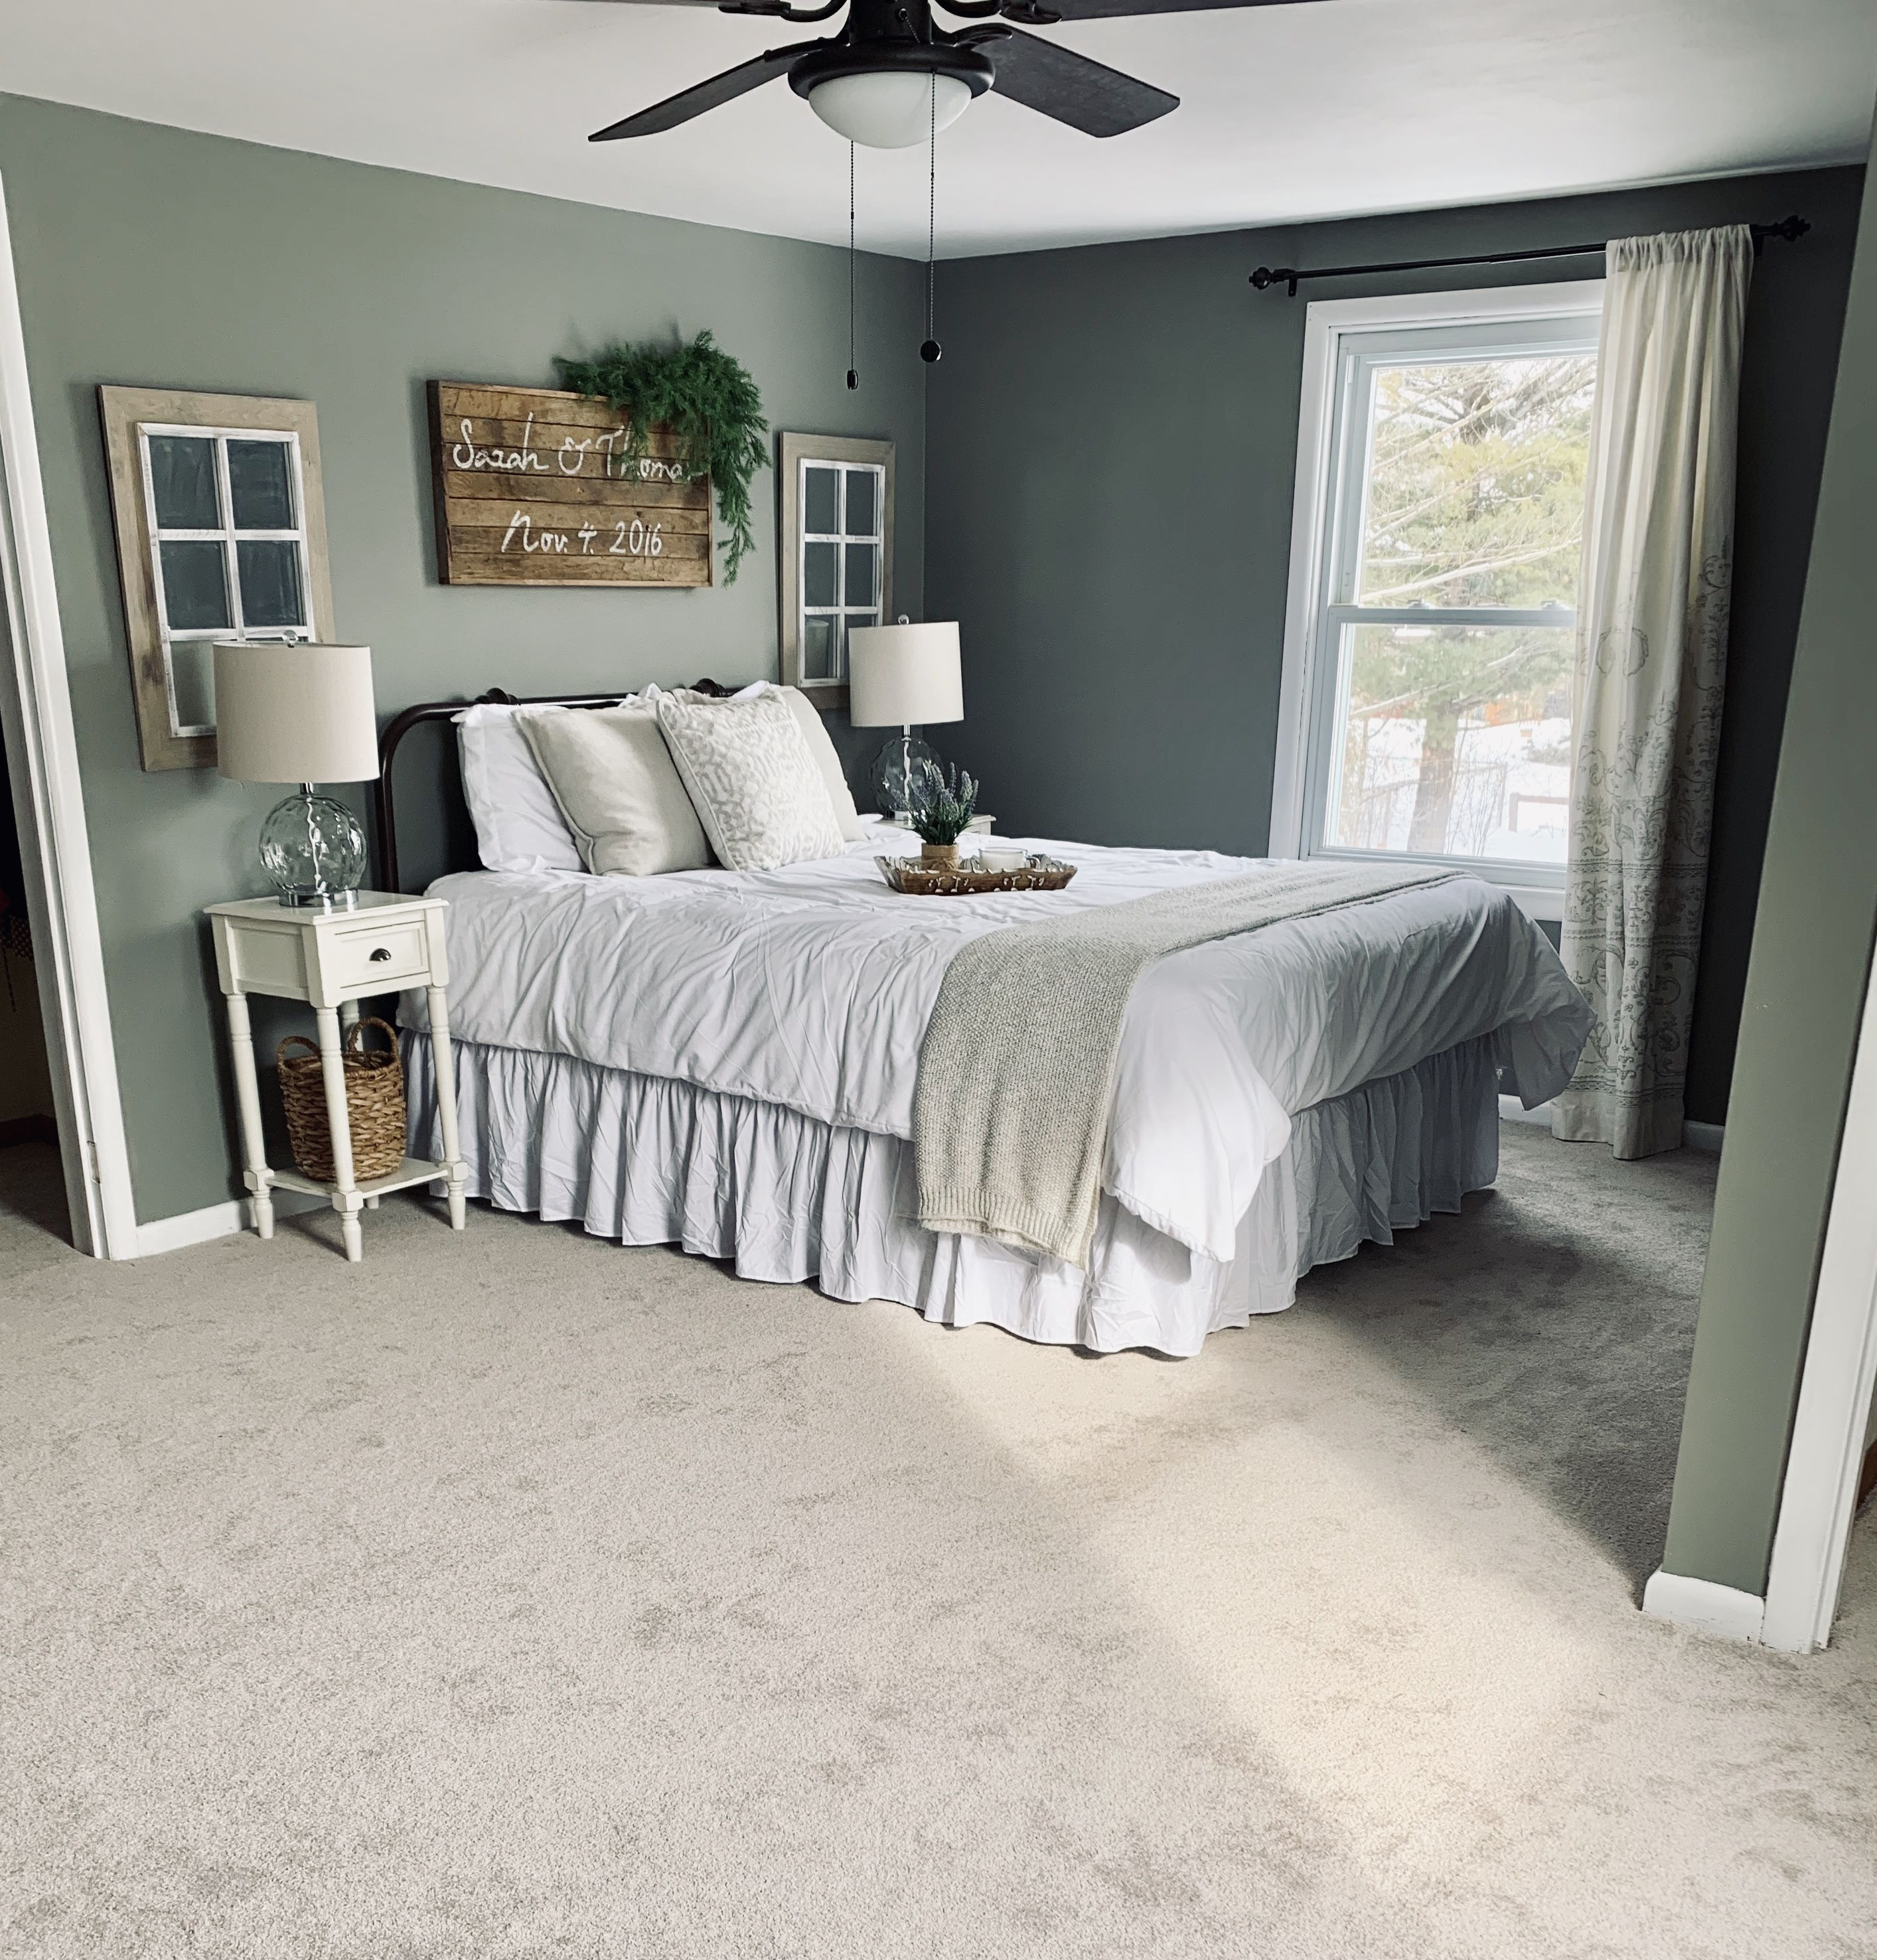 Dark Green Grey Walls With White Trim Bedspread And Wood Accents